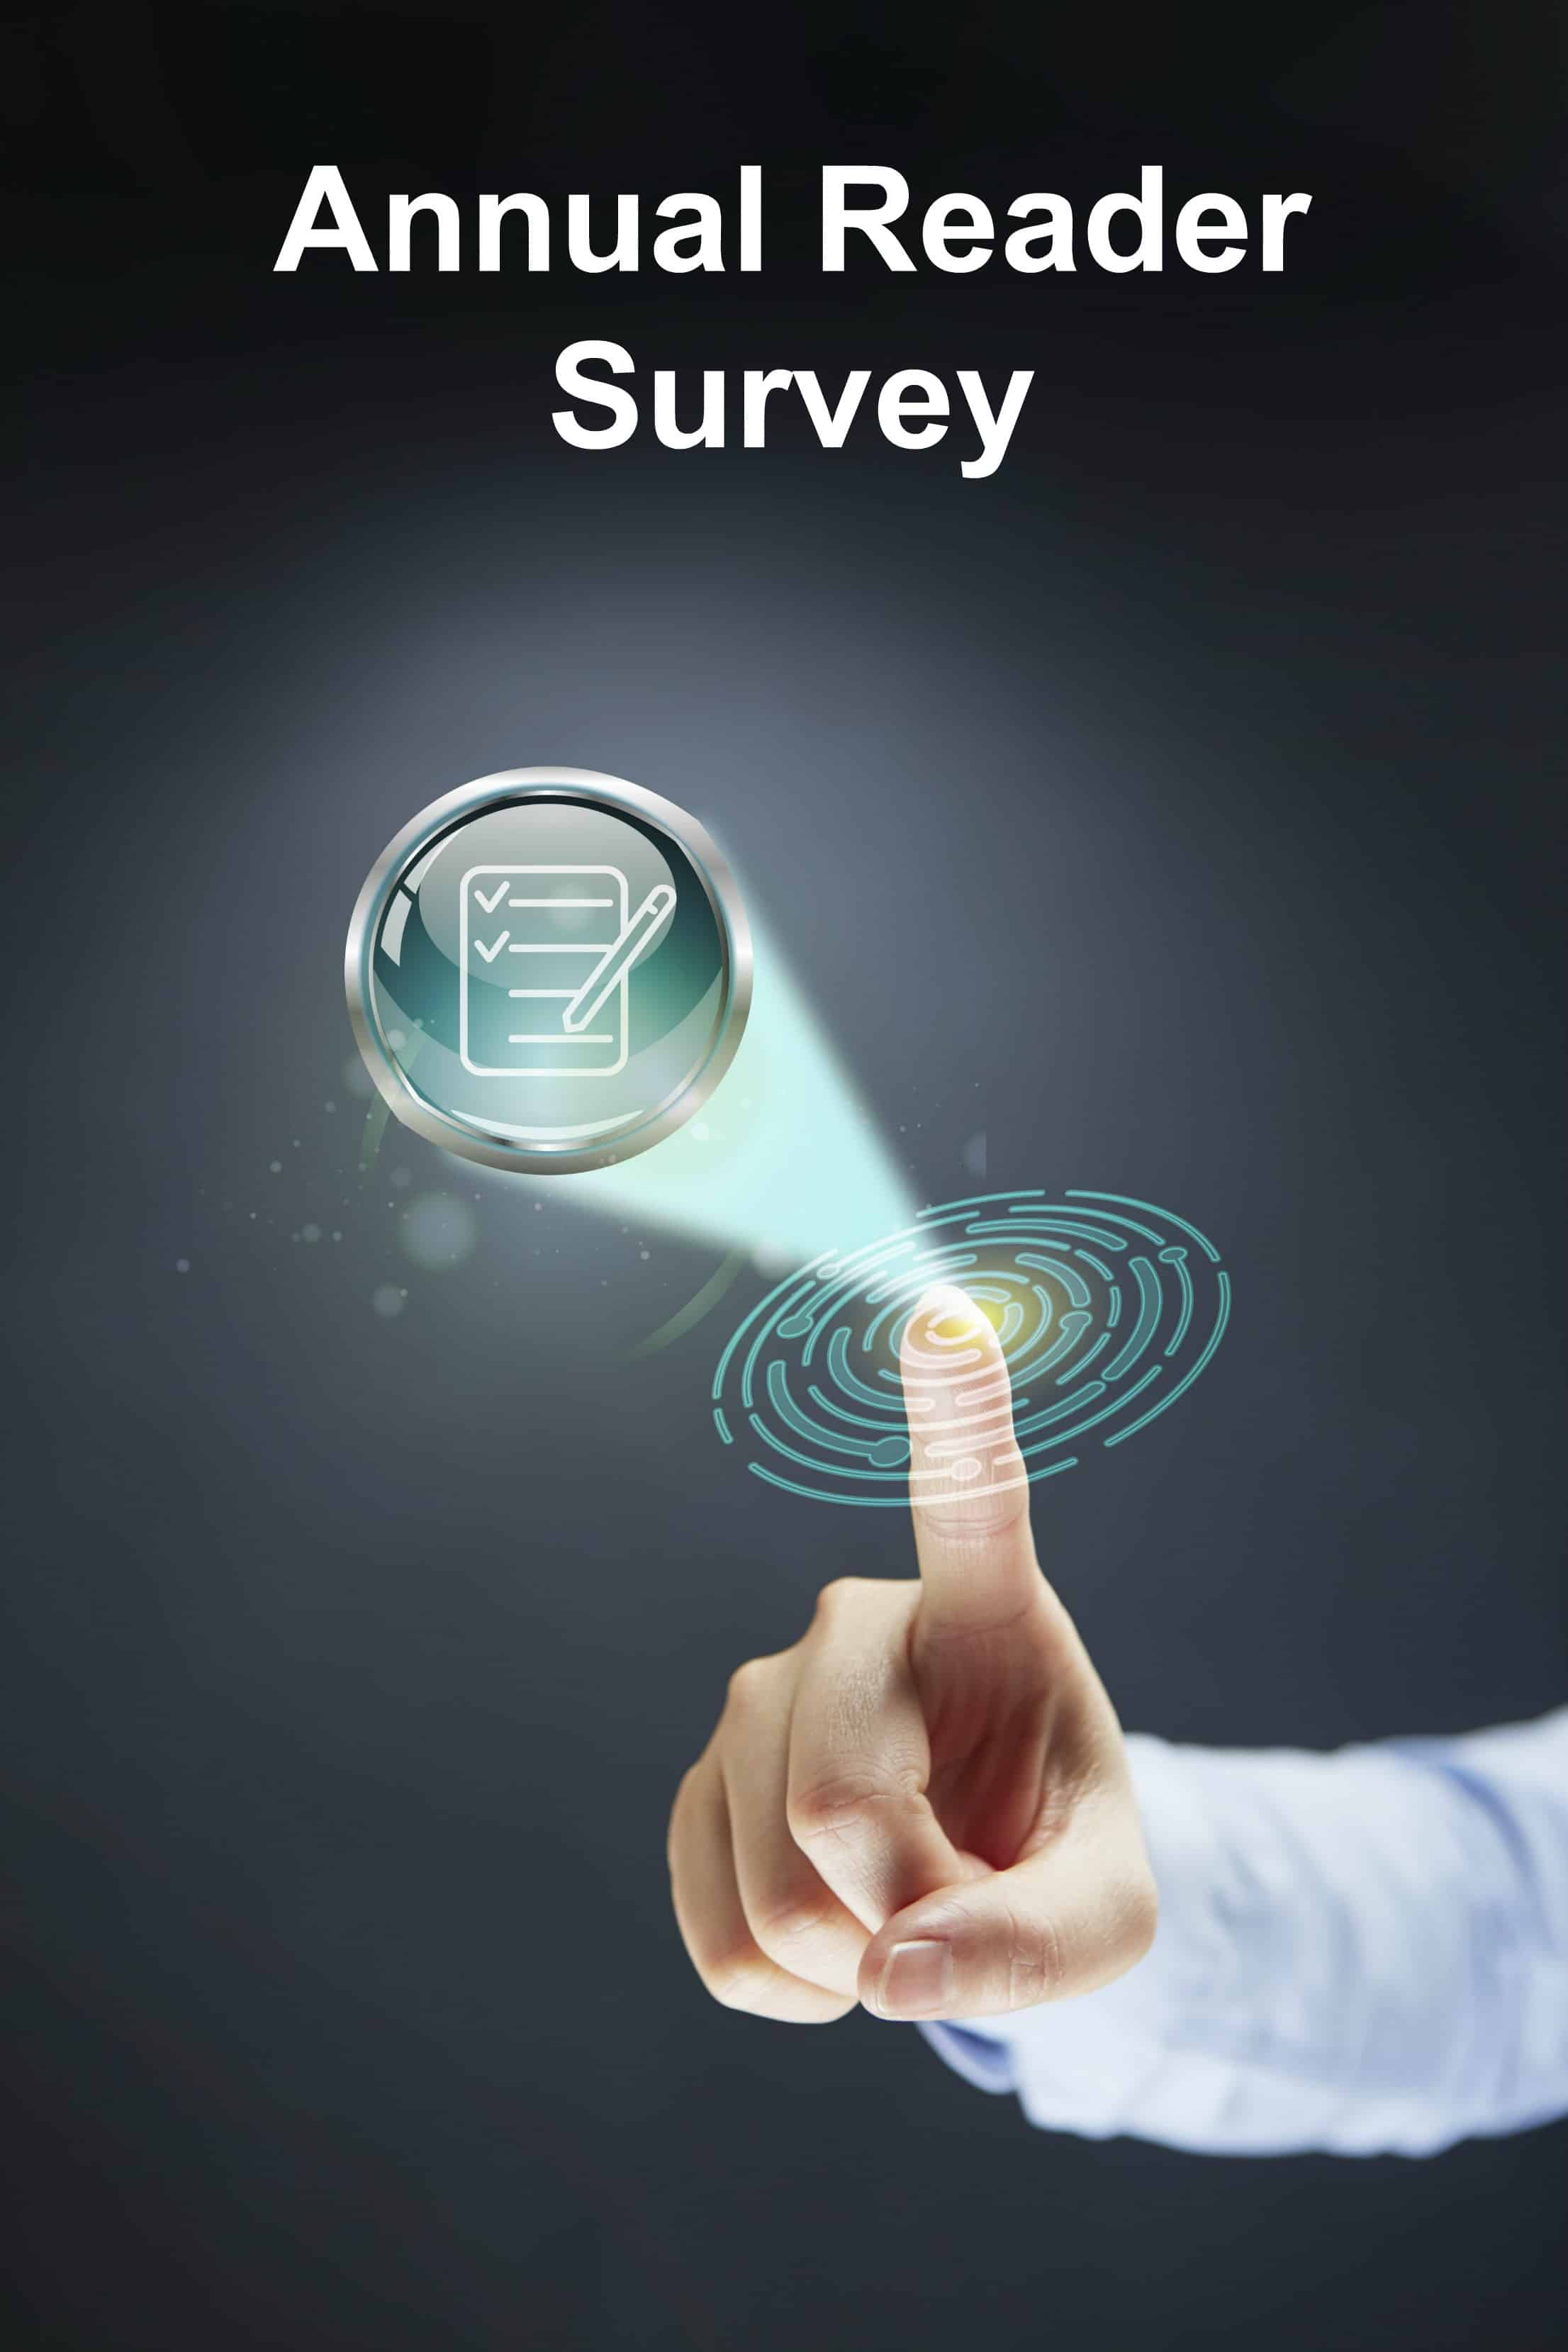 Take my annual reader survey